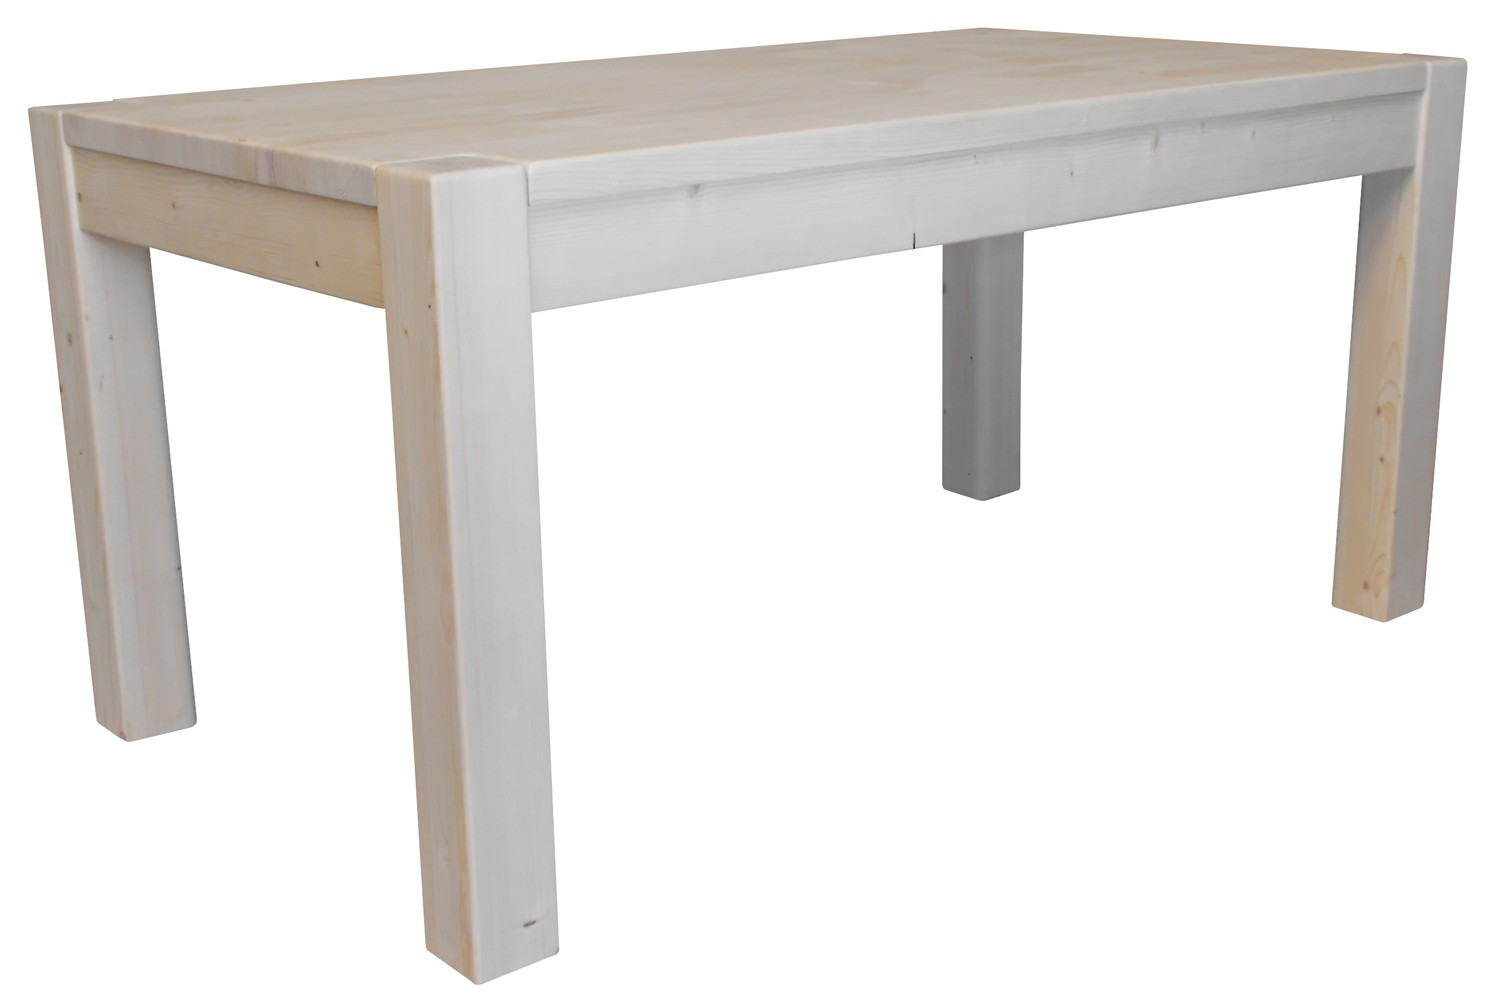 150 table en pin massif table pin massif 120 avec - Table cuisine pin massif ...